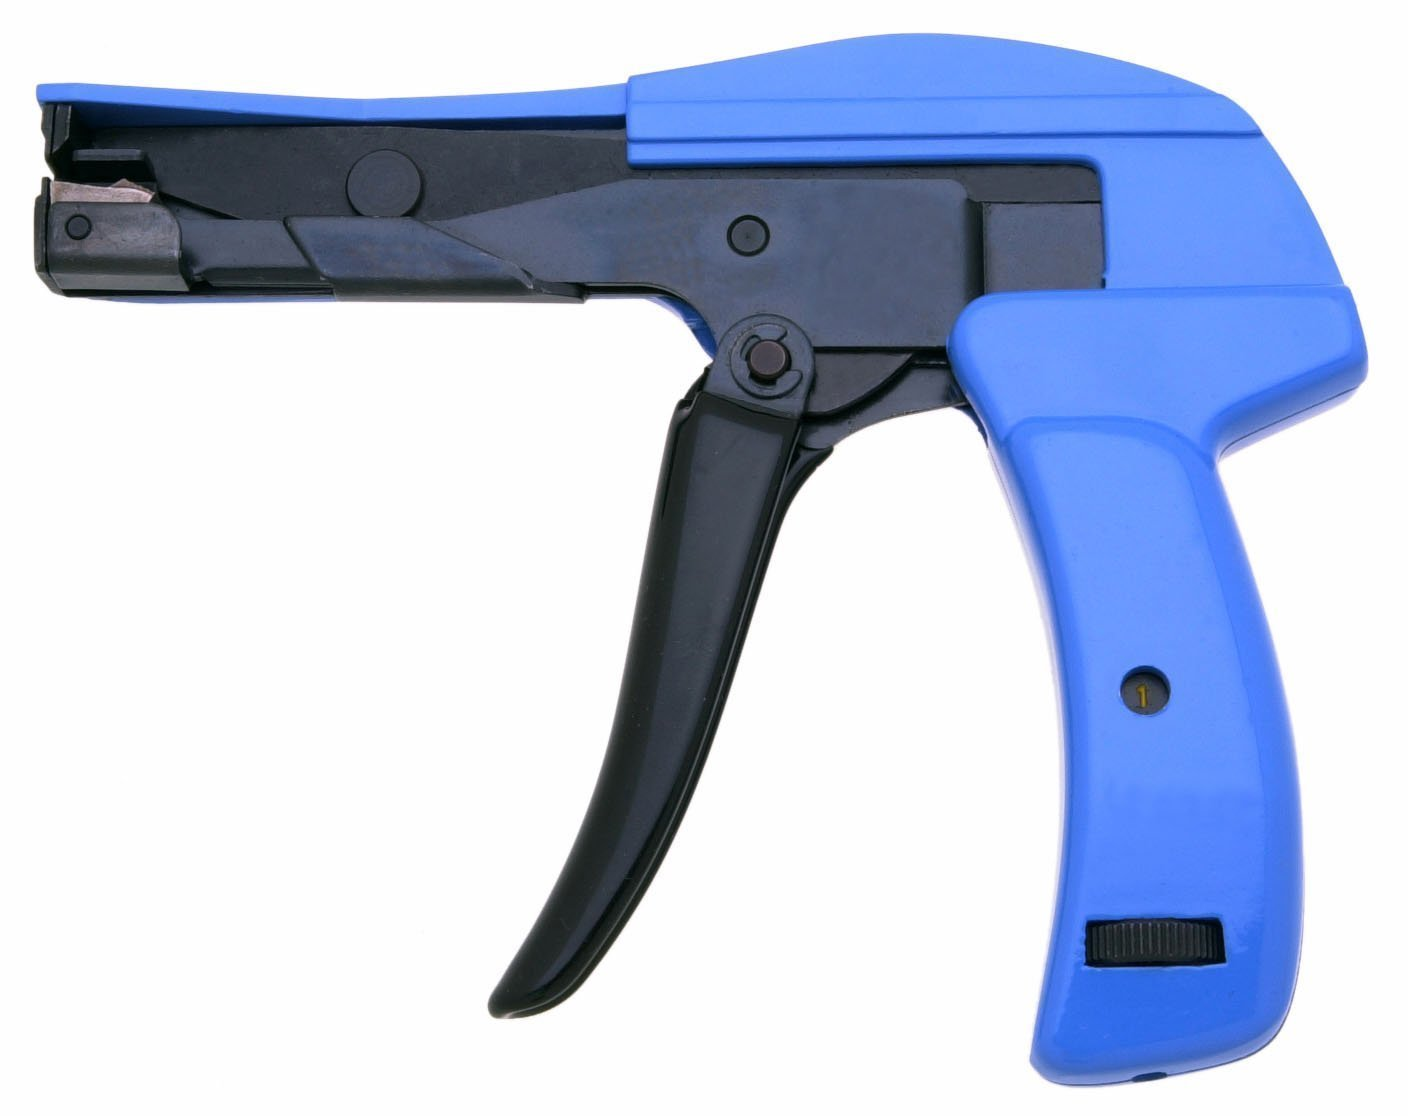 Wovier HS-600A Heavy Duty Cable Tie Gun, Clamshell. Die-Cast Steel Flush Cut Point DataCom Cable Tie Gun with Steel Handle, 7'' Length